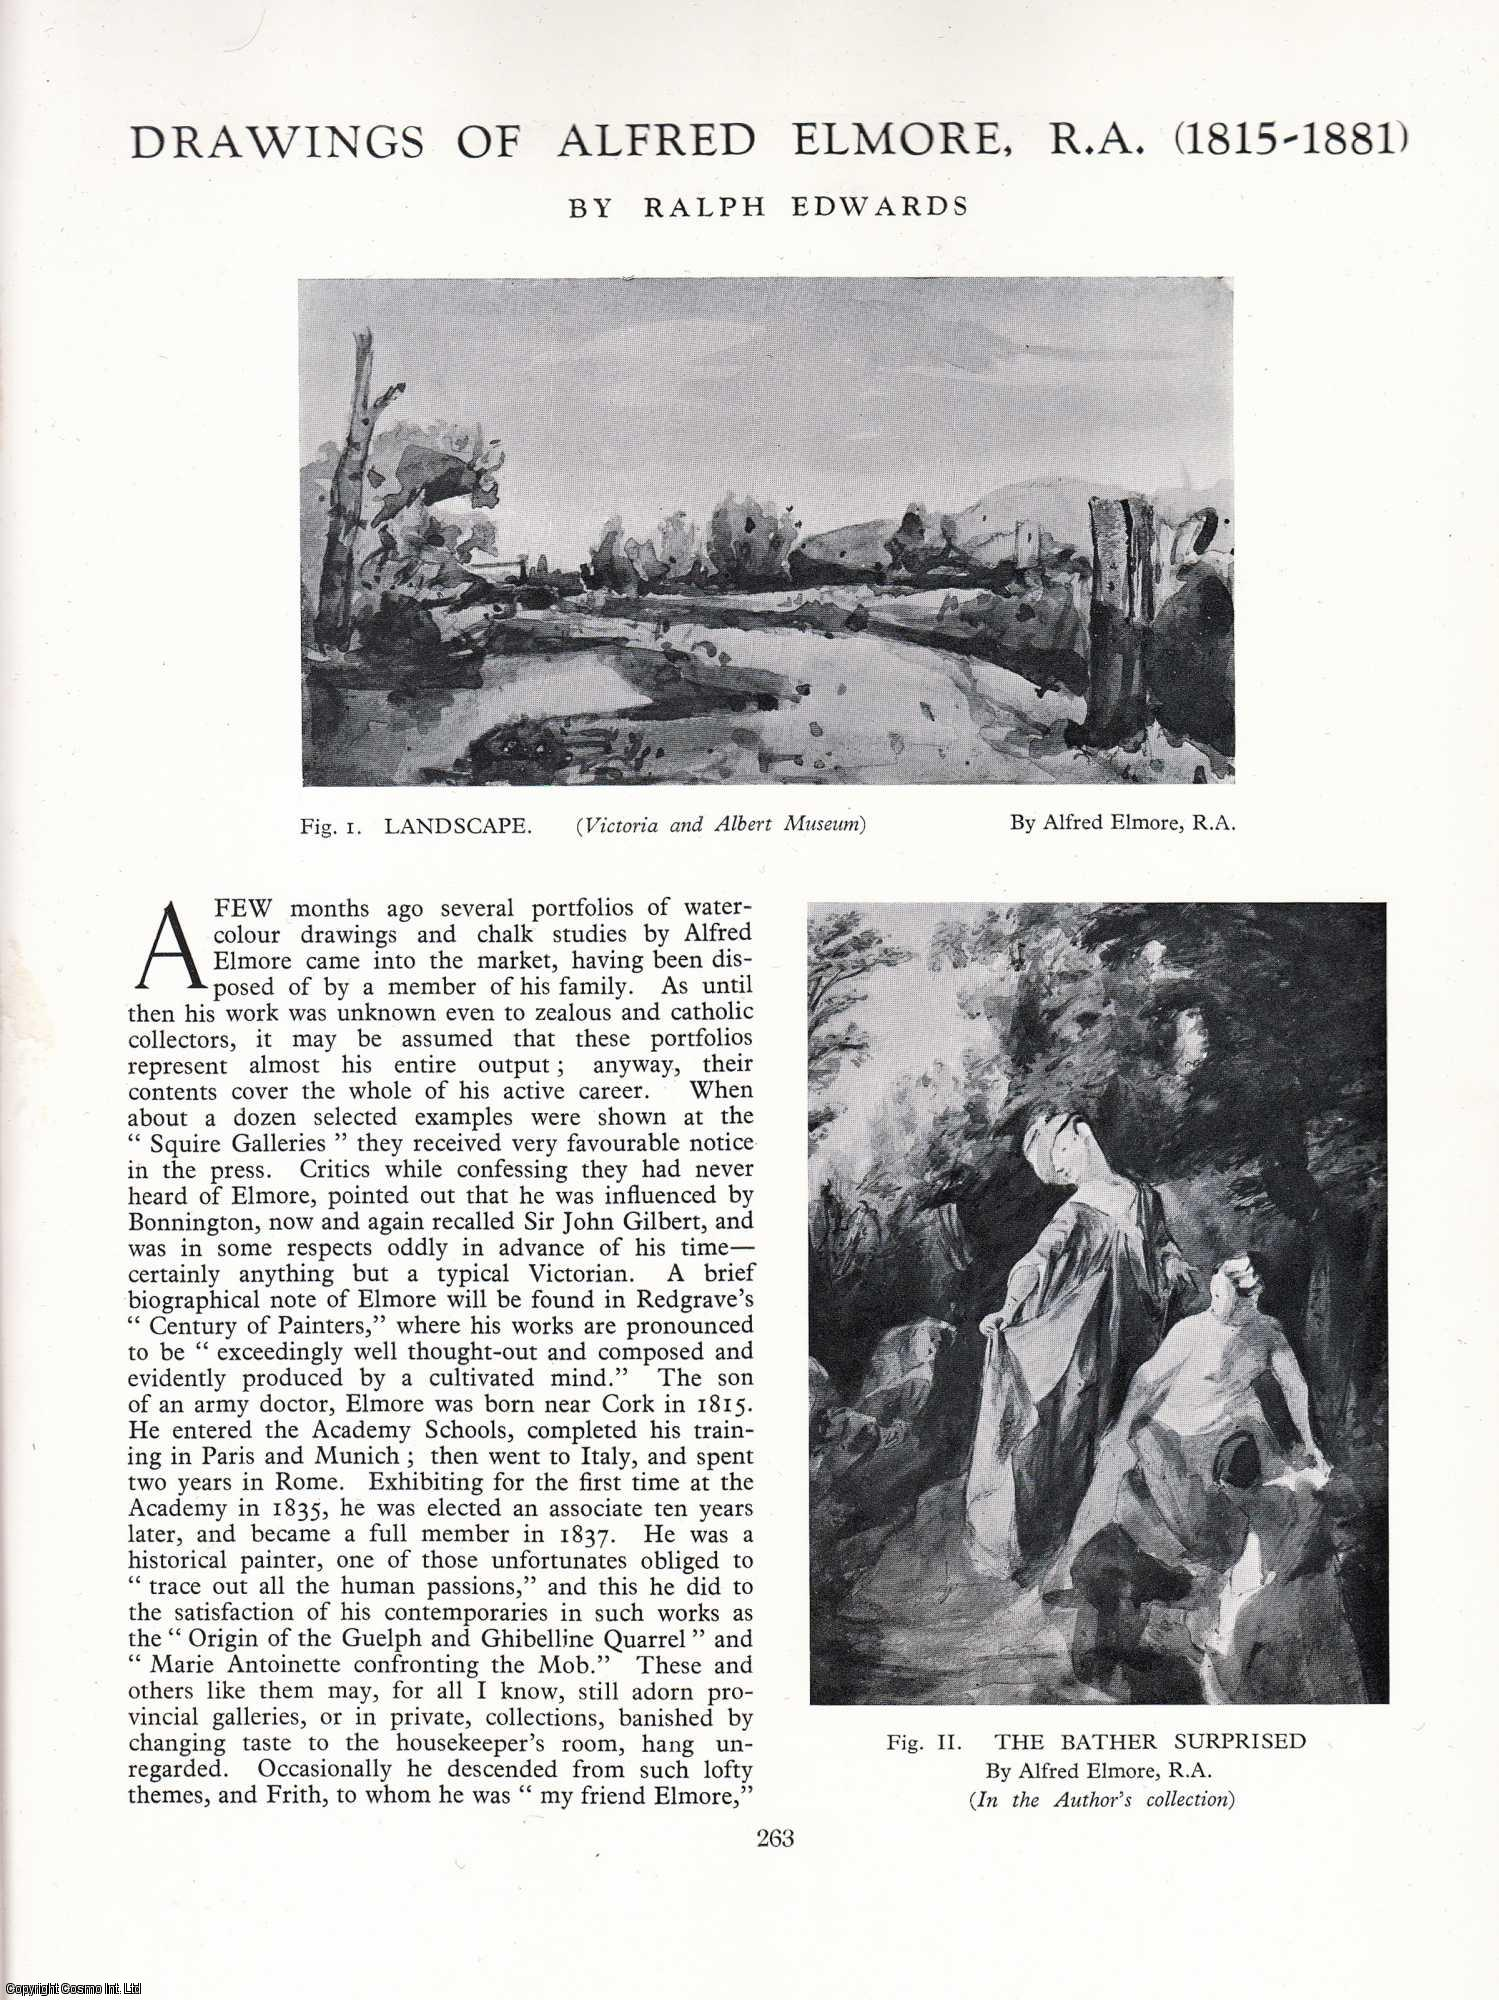 EDWARDS, RALPH - Drawings of Alfred Elmore, R.A. (1815-1881). An original article from the Apollo, the Magazine of the Arts. 1934.